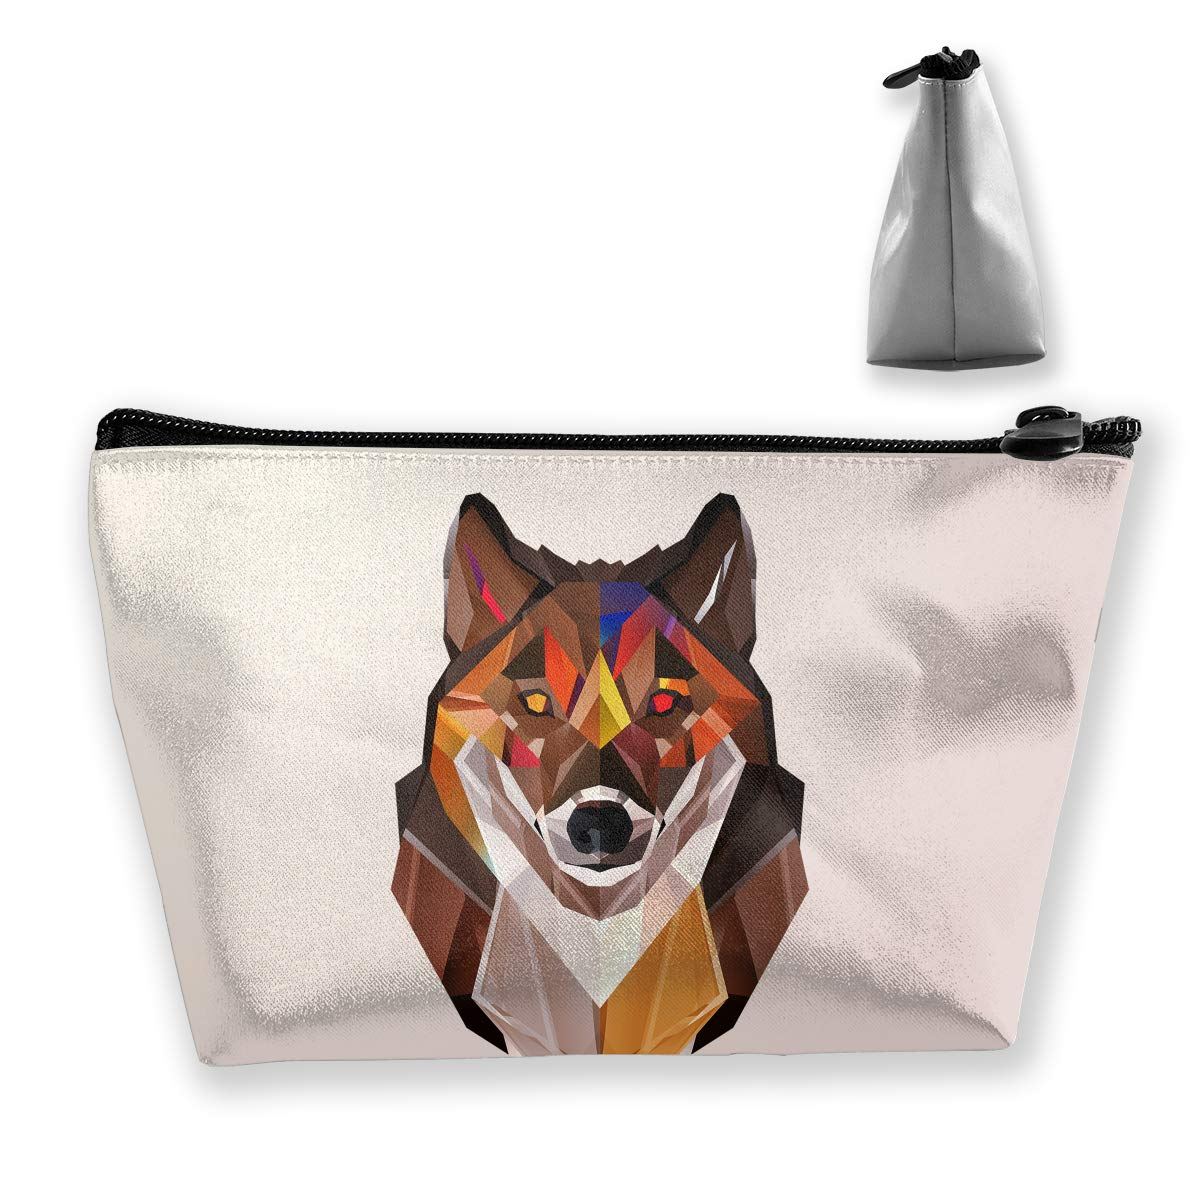 7aa88ad95f25 Amazon.com: customgogo Women's Insanity Wolf Travel Makeup Bags ...